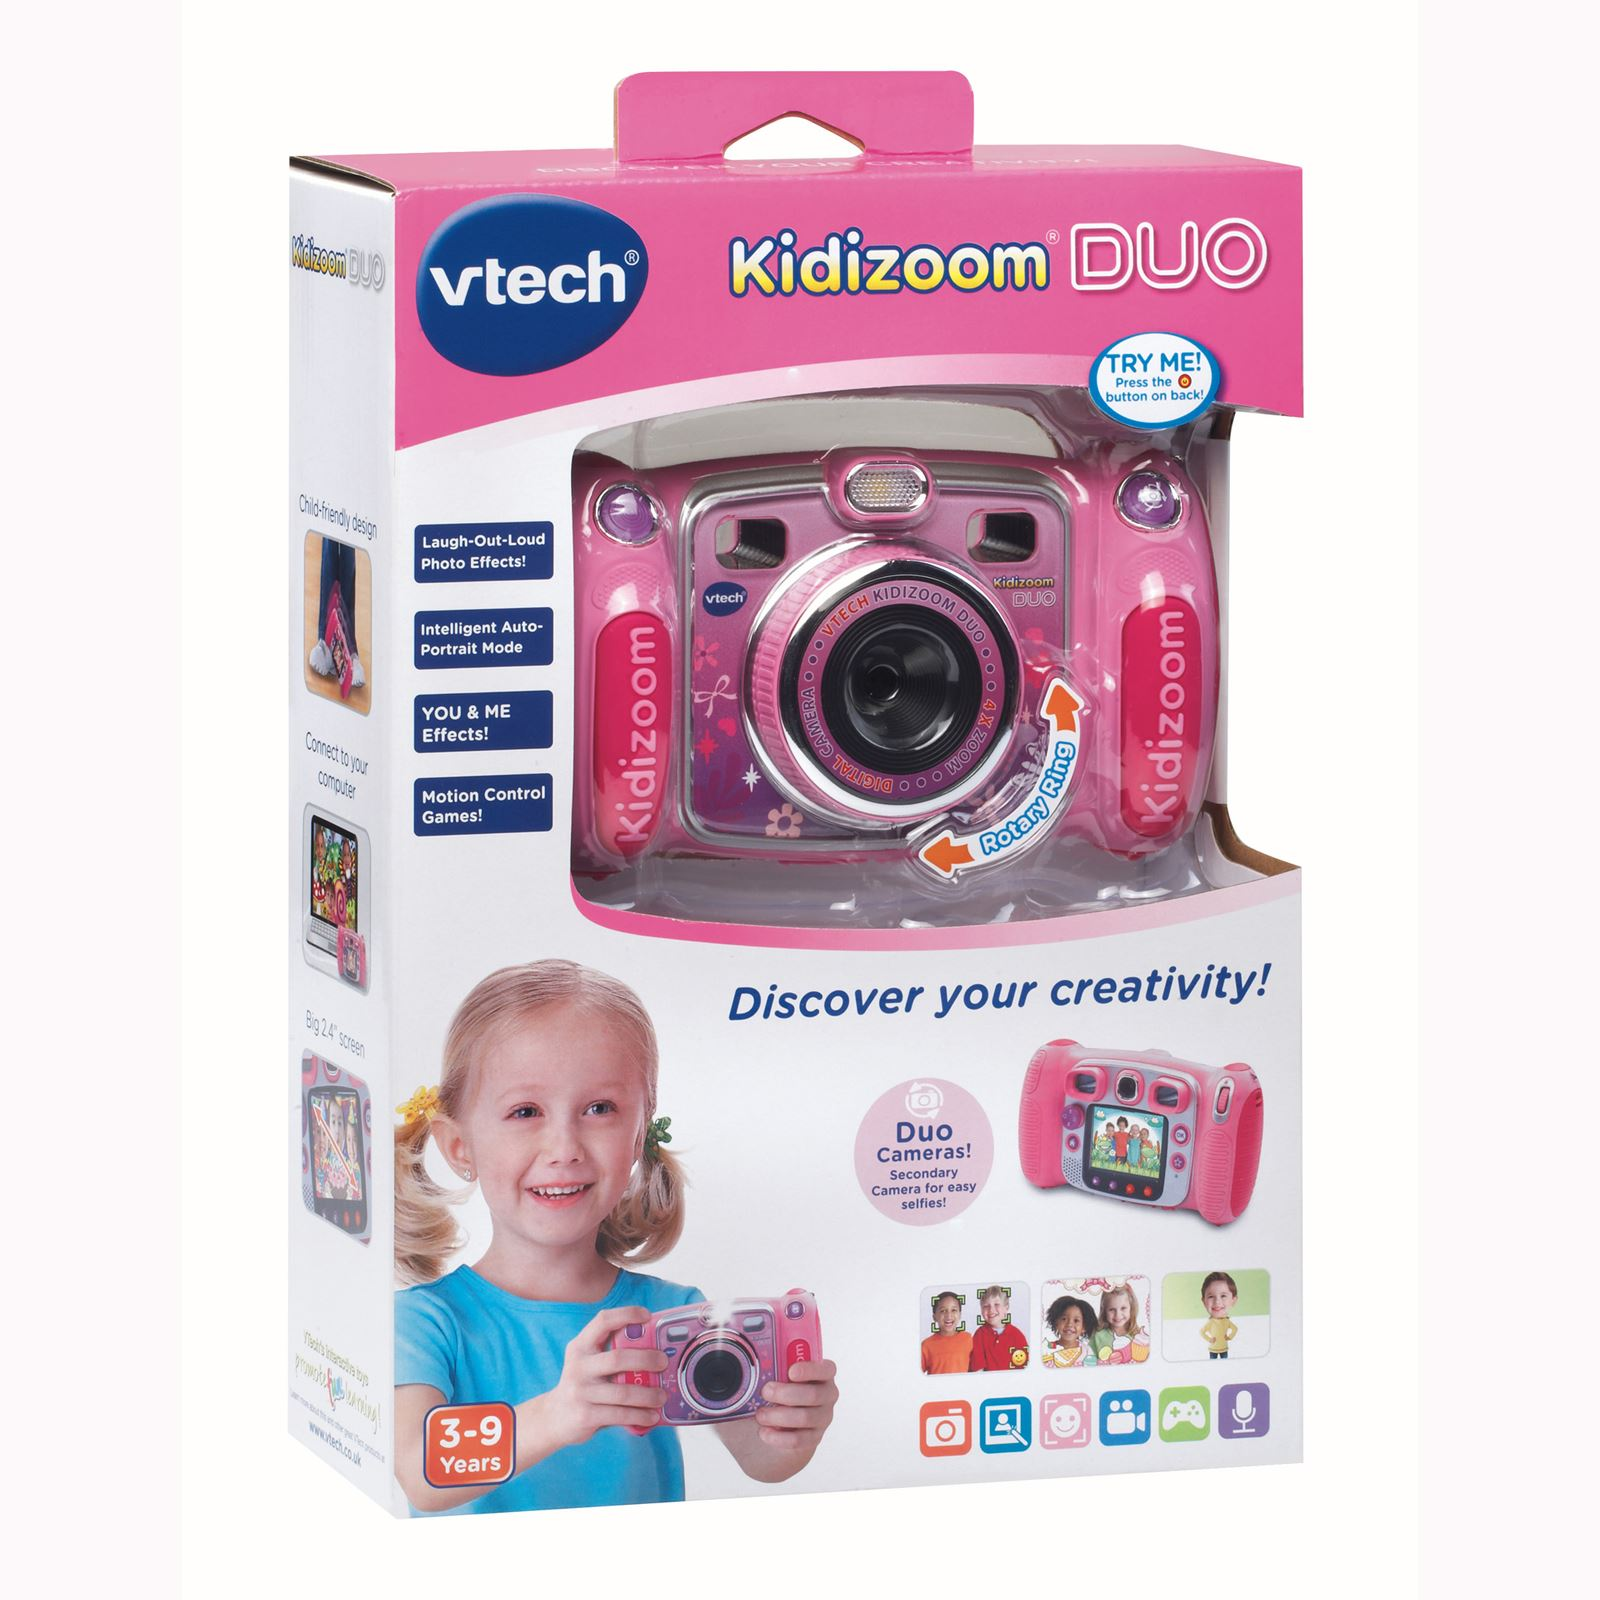 vtech kidizoom duo enfants appareils photo num riques en bleu et rose vtech ebay. Black Bedroom Furniture Sets. Home Design Ideas